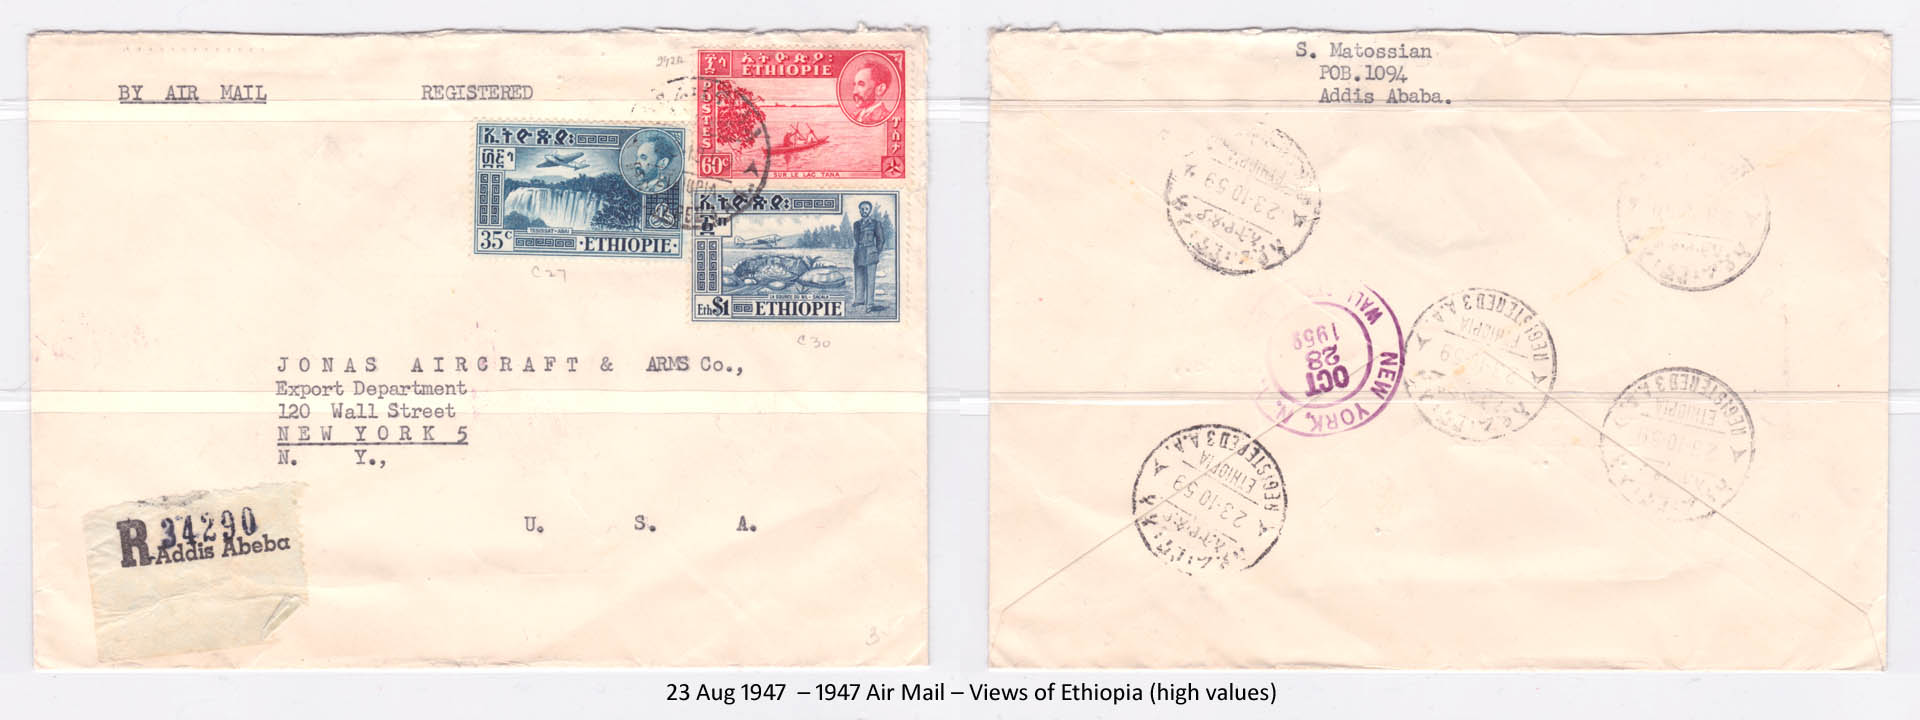 19470823 – 1947 Air Mail – Views of Ethiopia (high values)